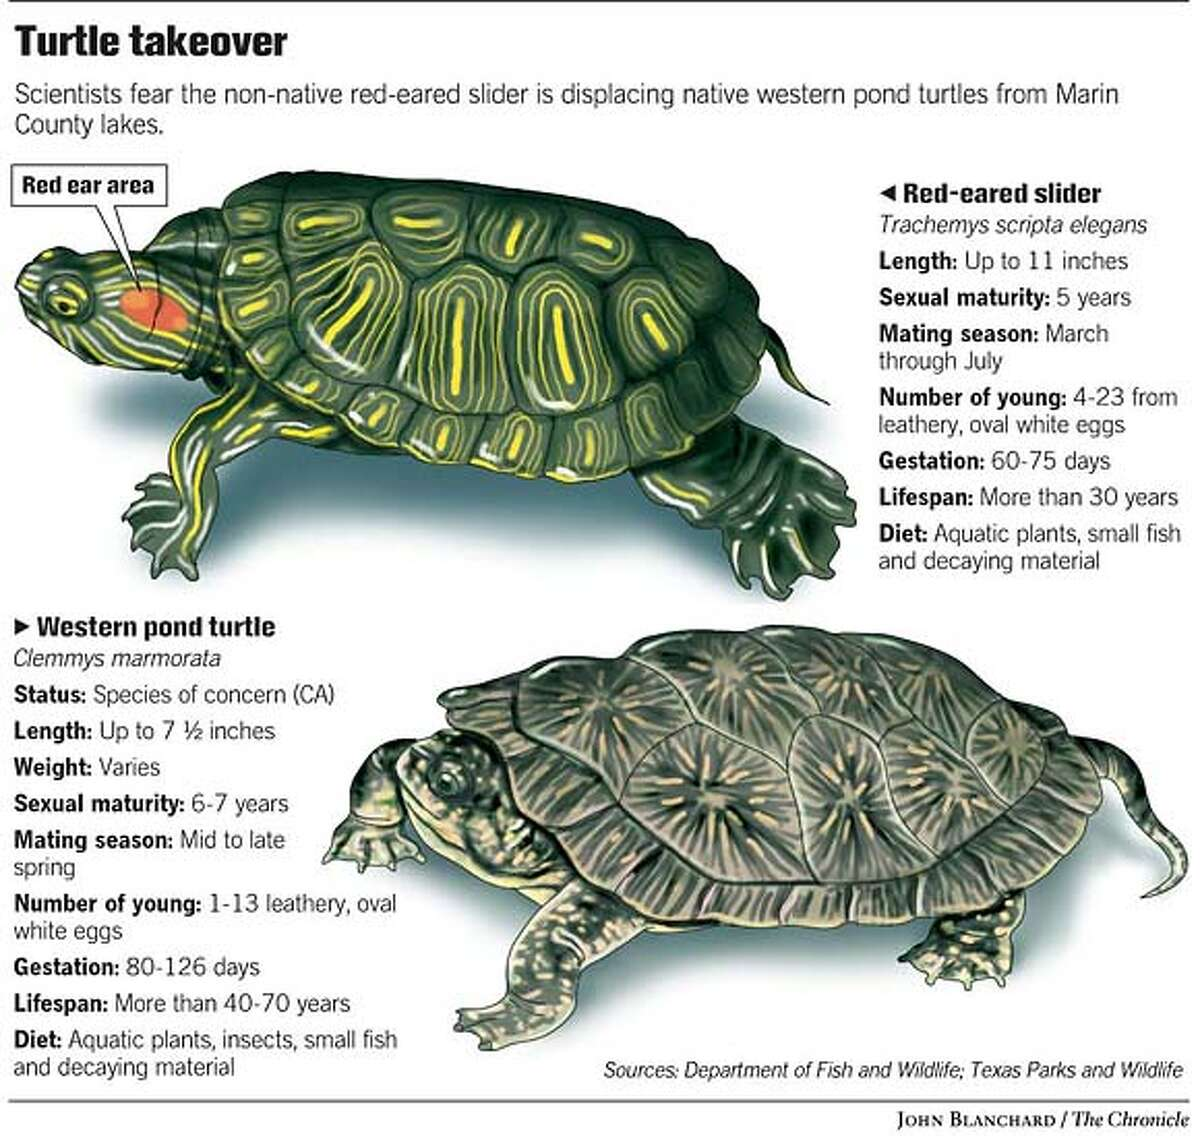 A Tale of Two Turtles. Chronicle graphic by John Blanchard